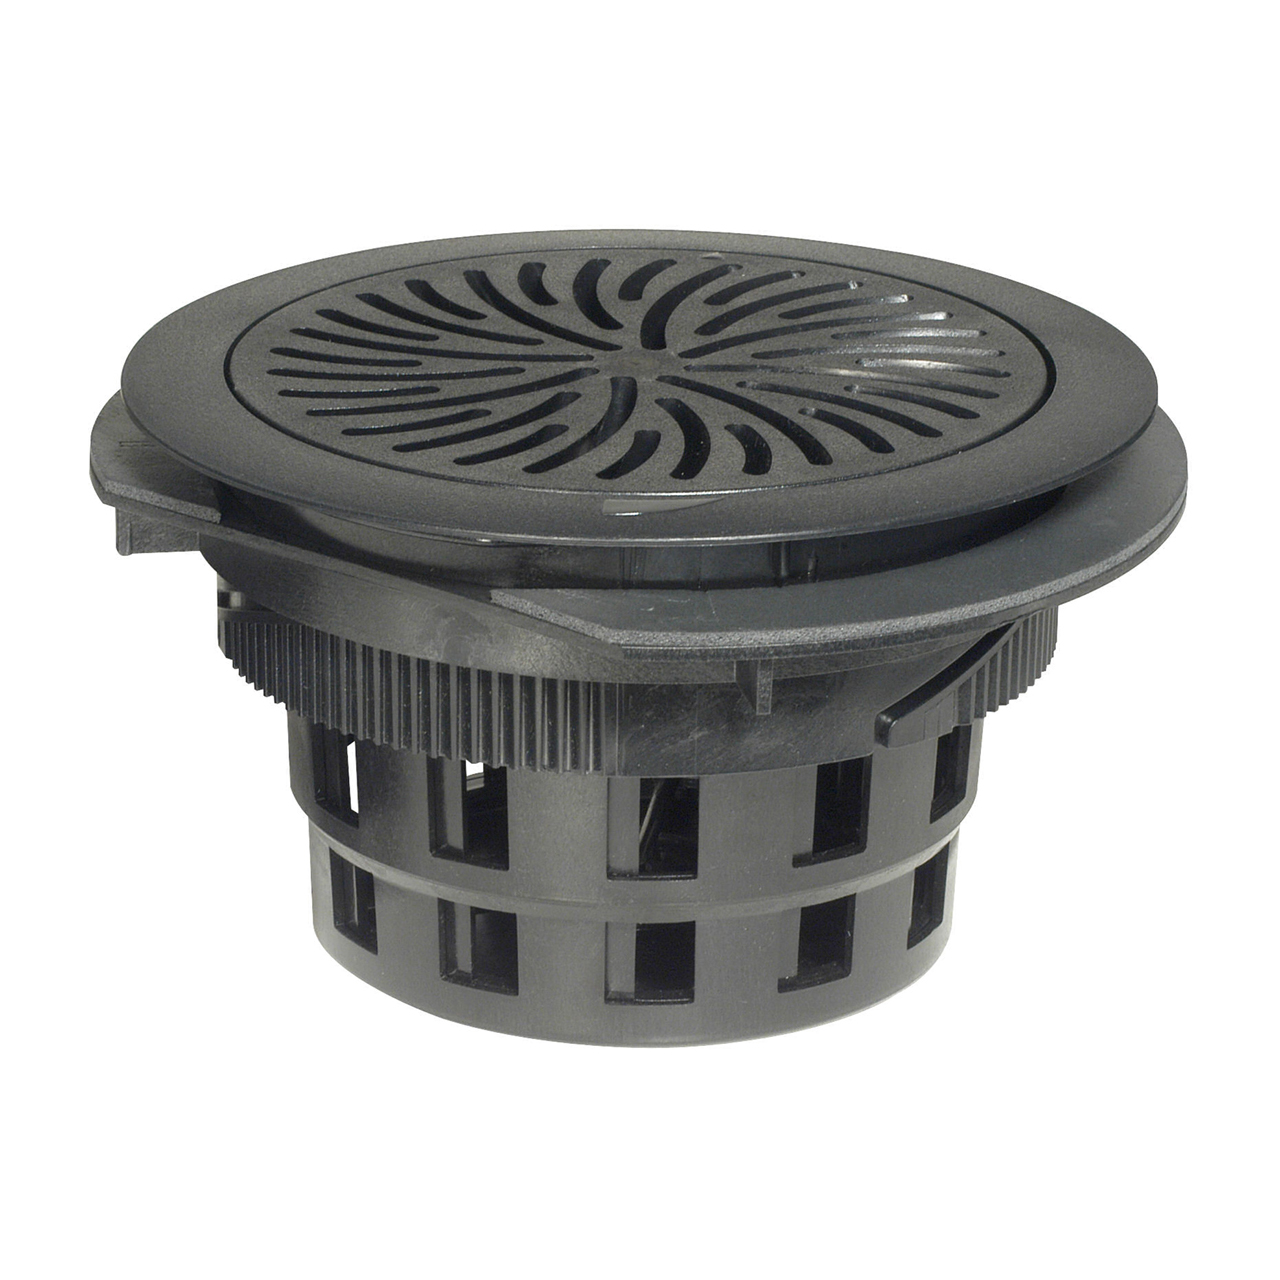 carrier-35BF-R-high-induction-underfloor-swirl-diffuser